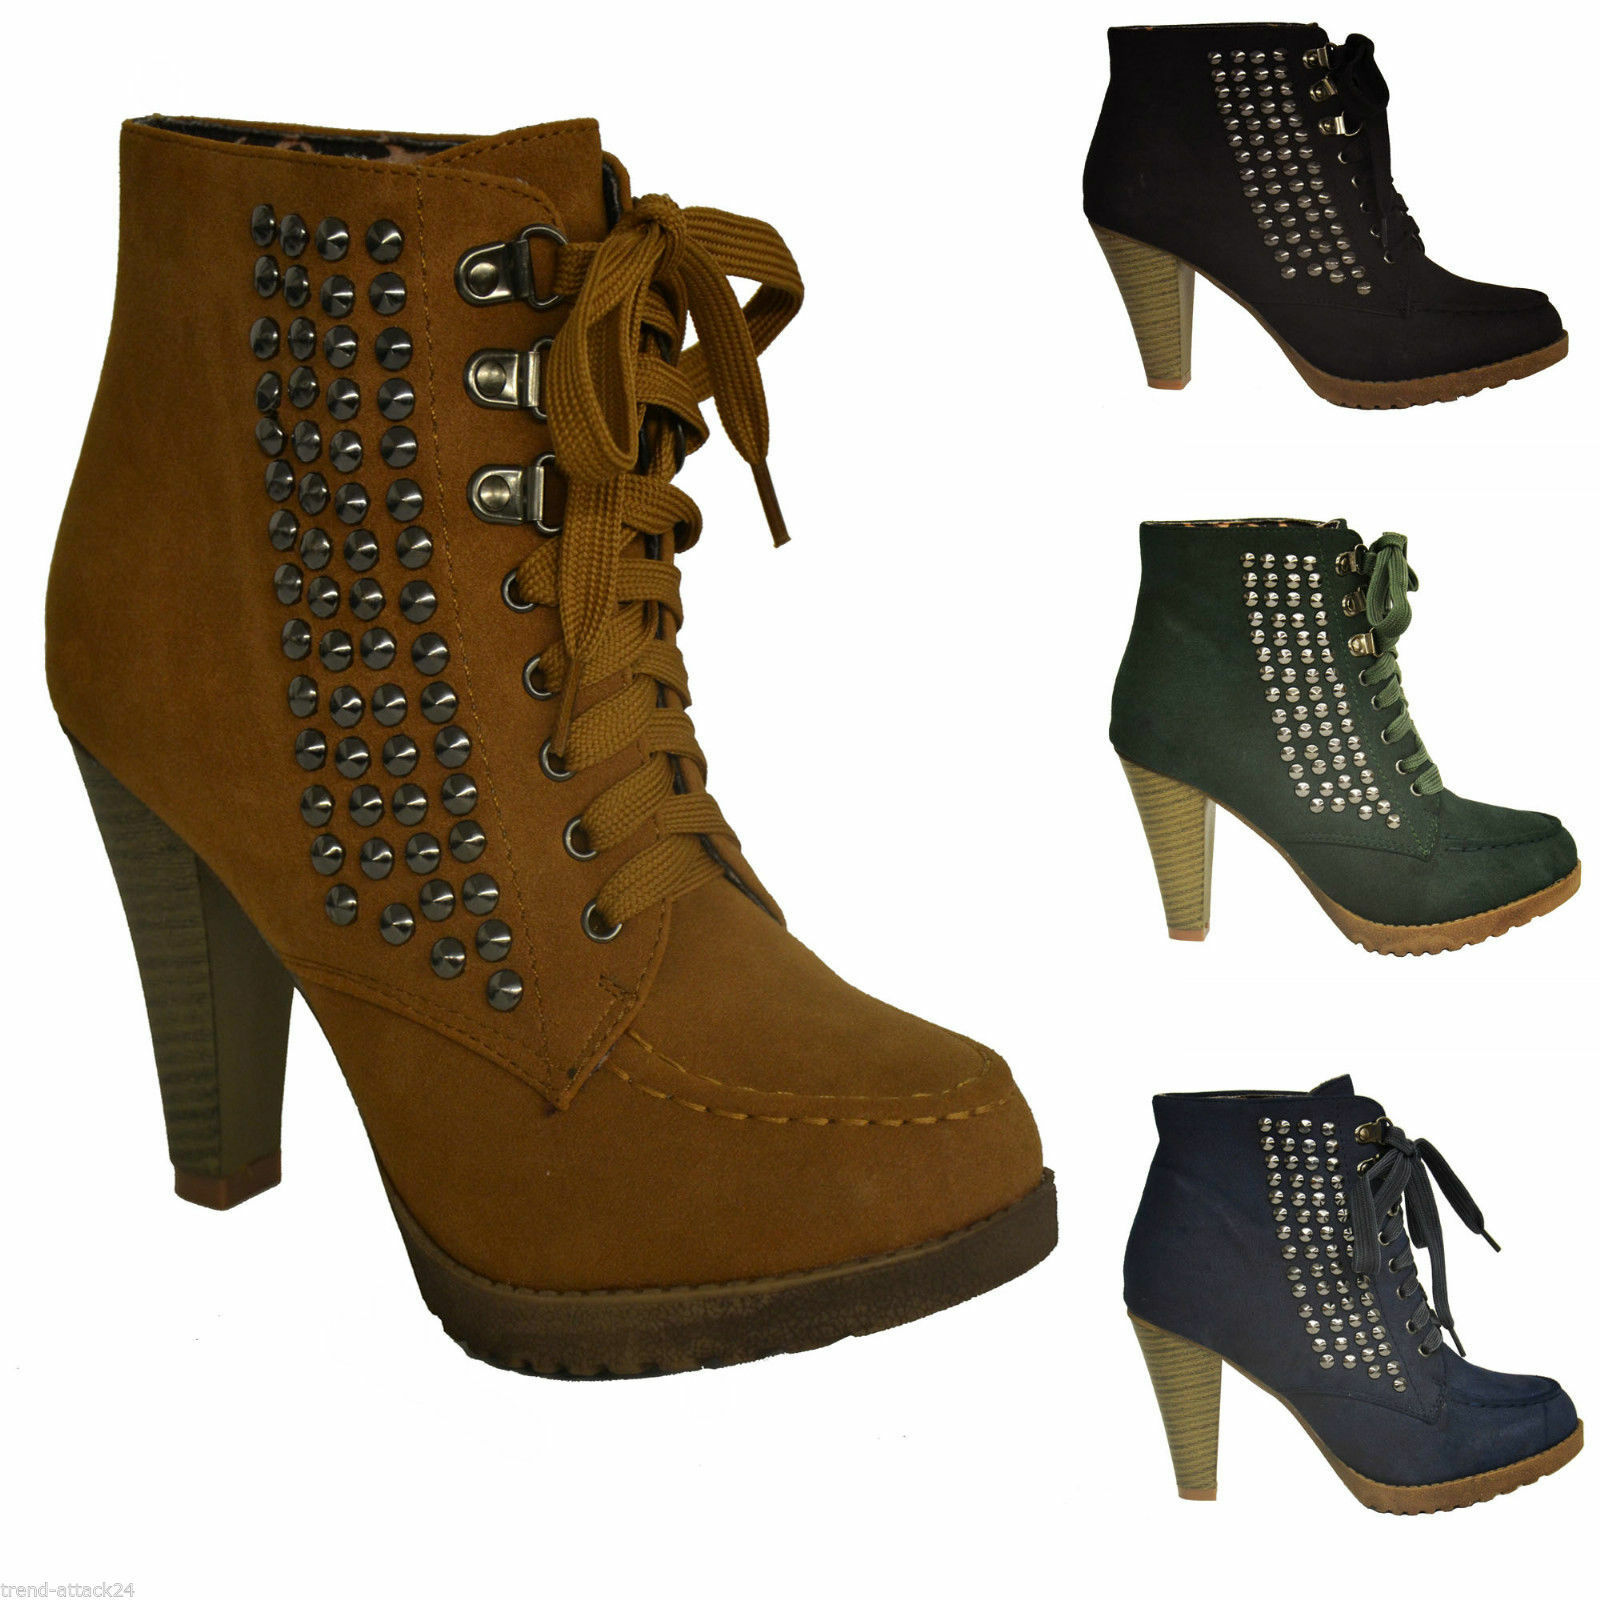 Ankle Platform Boots Court shoes Studs Platelets Spikes Suede Look